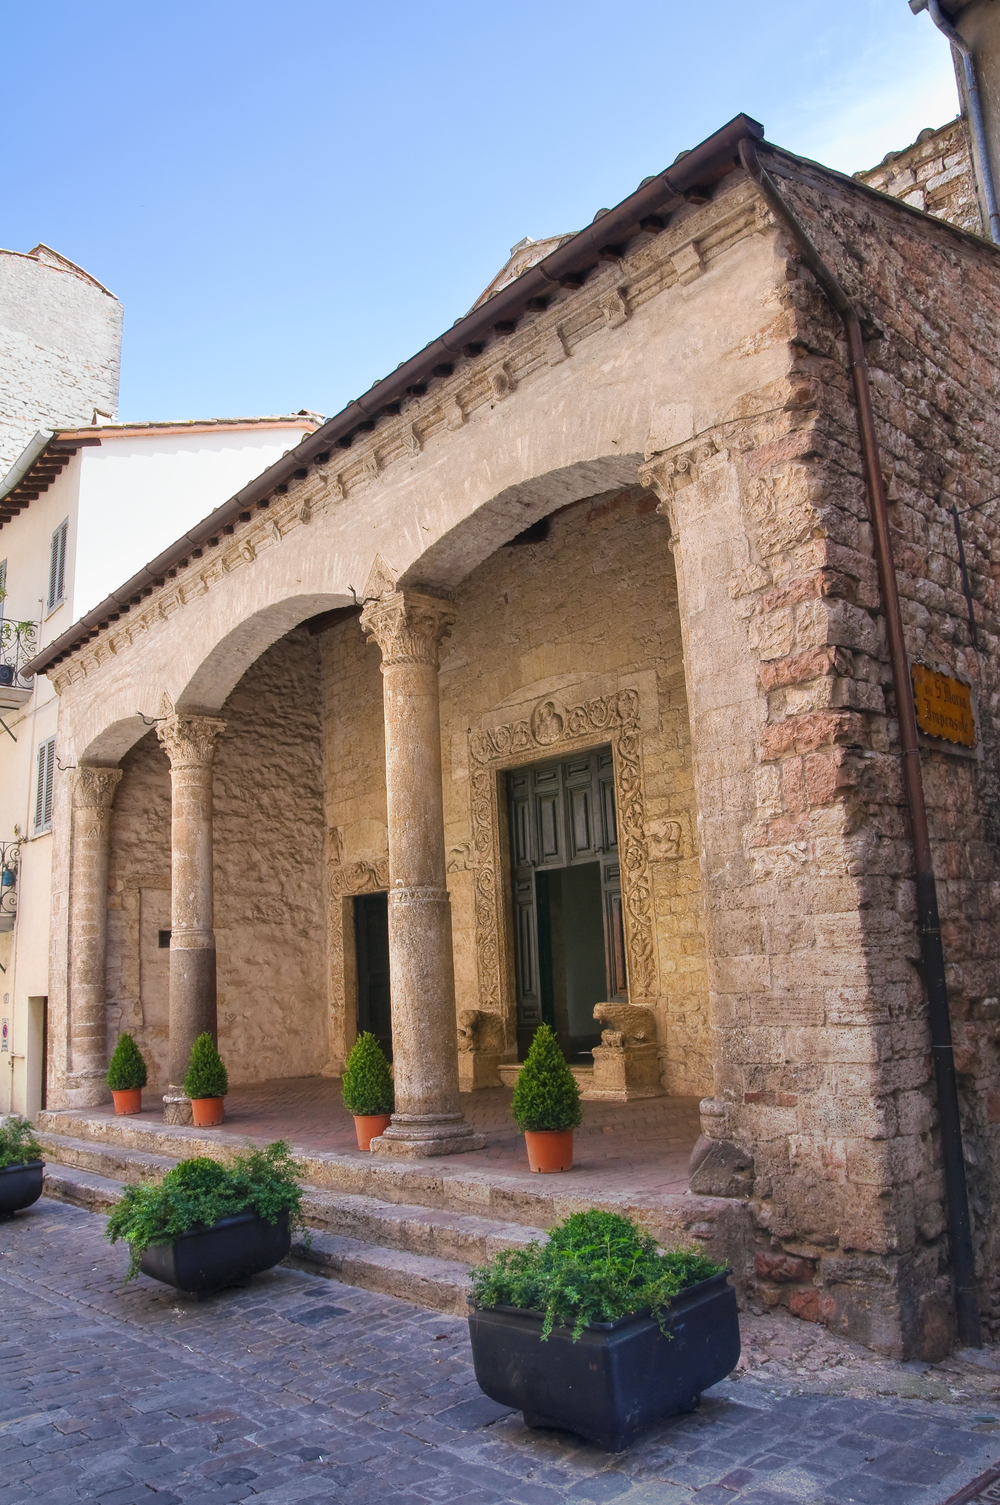 church in narni.jpg